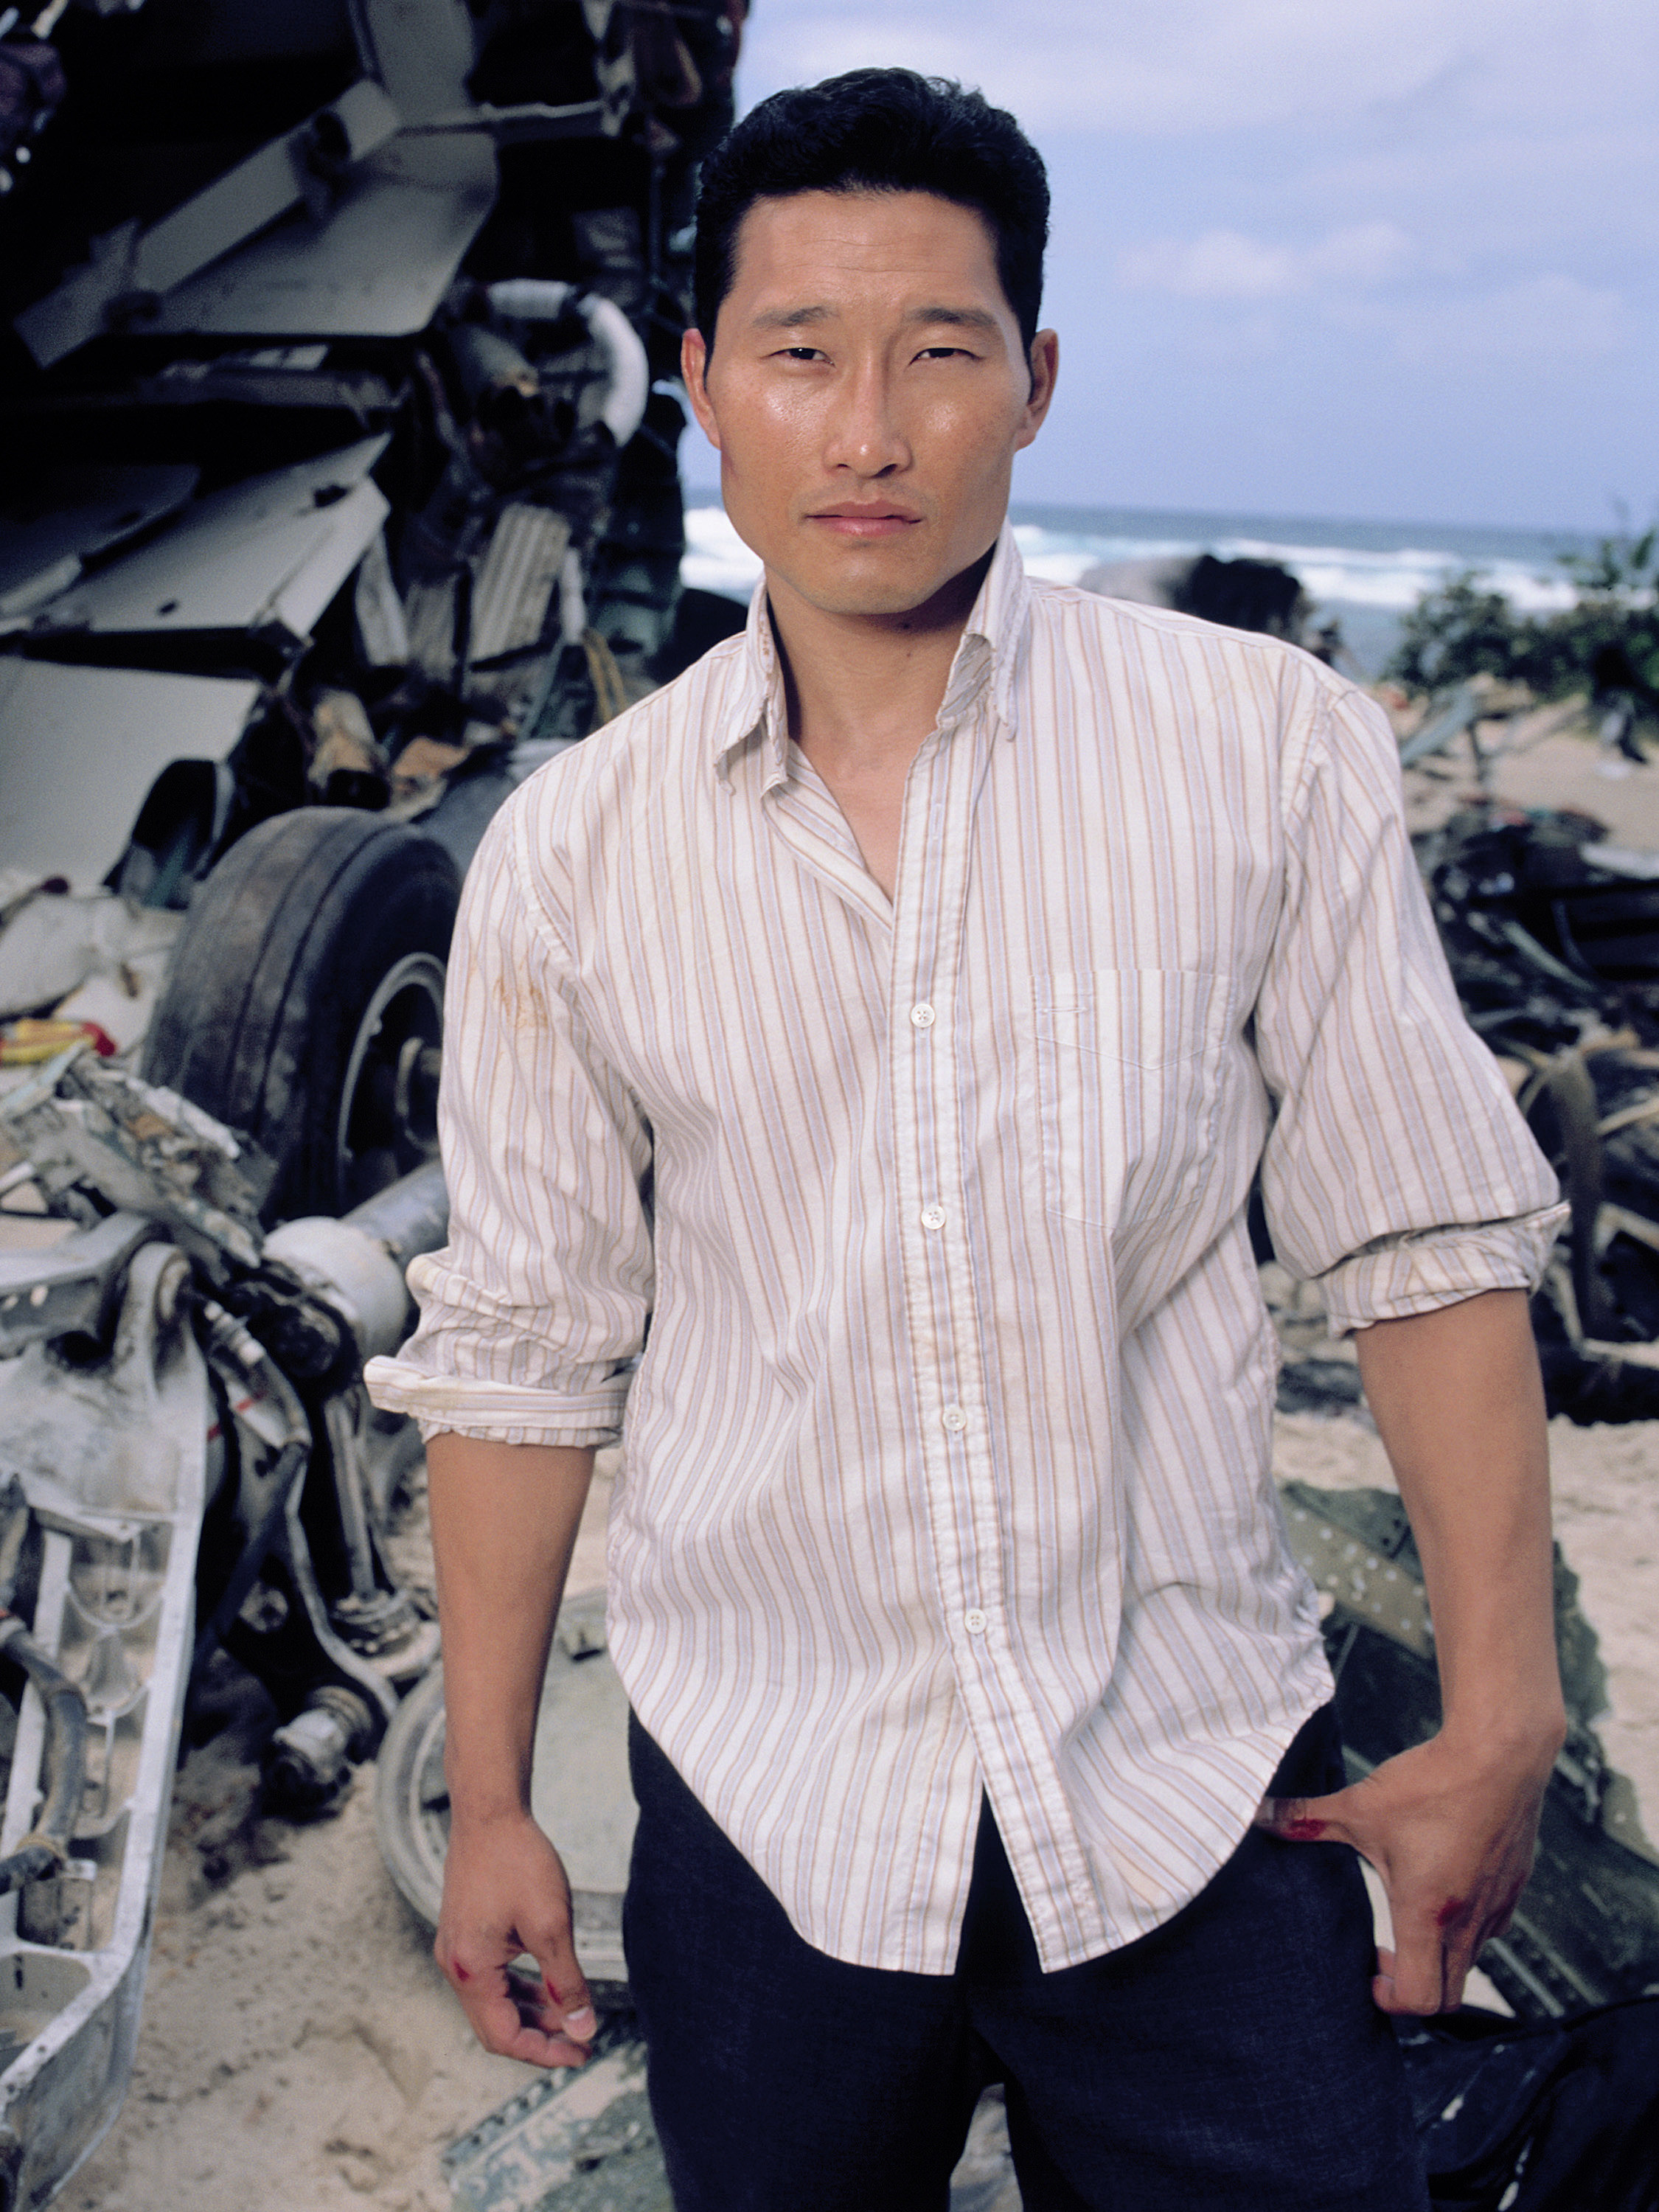 Kim in a promo image for the TV show Lost